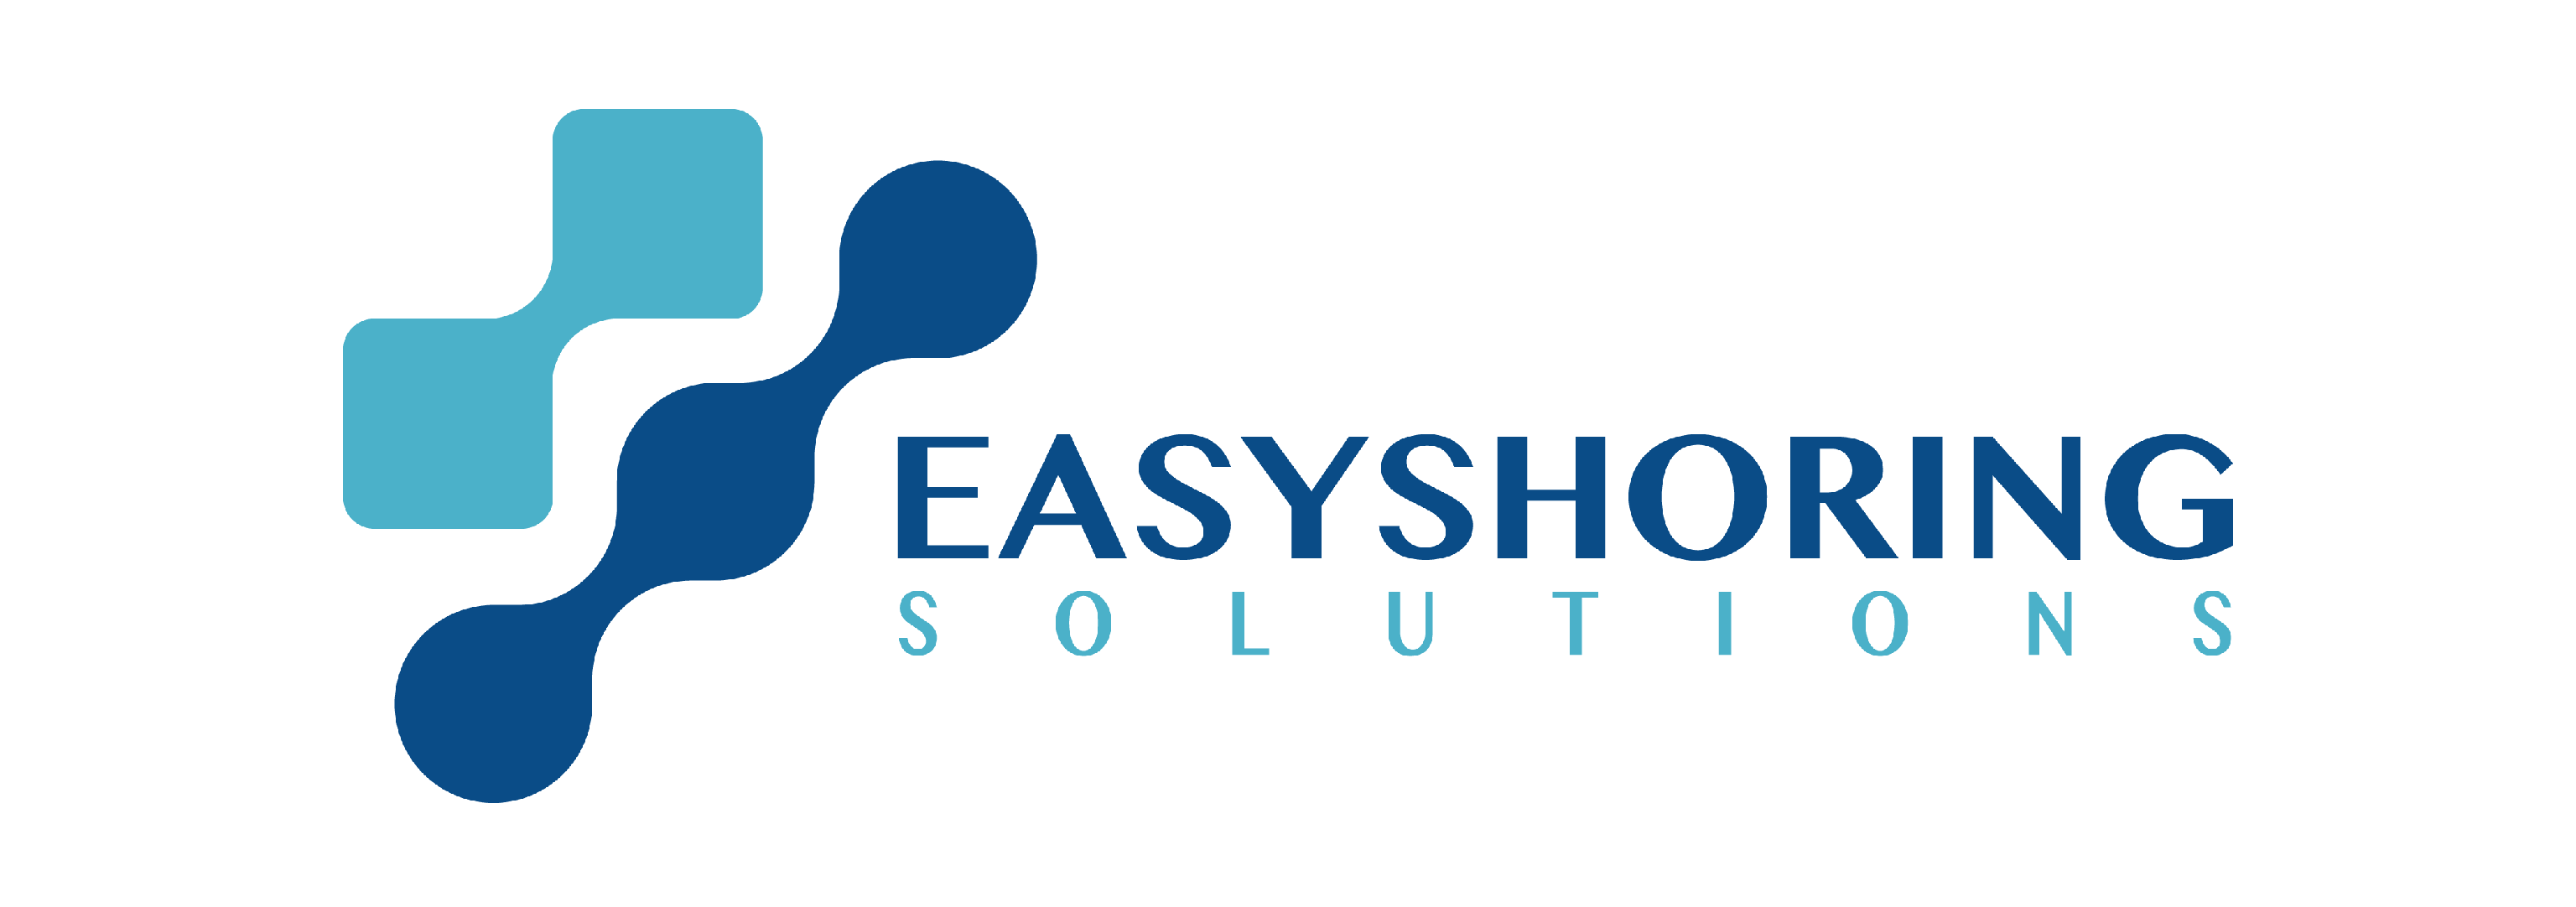 EASYSHORING SOLUTIONS